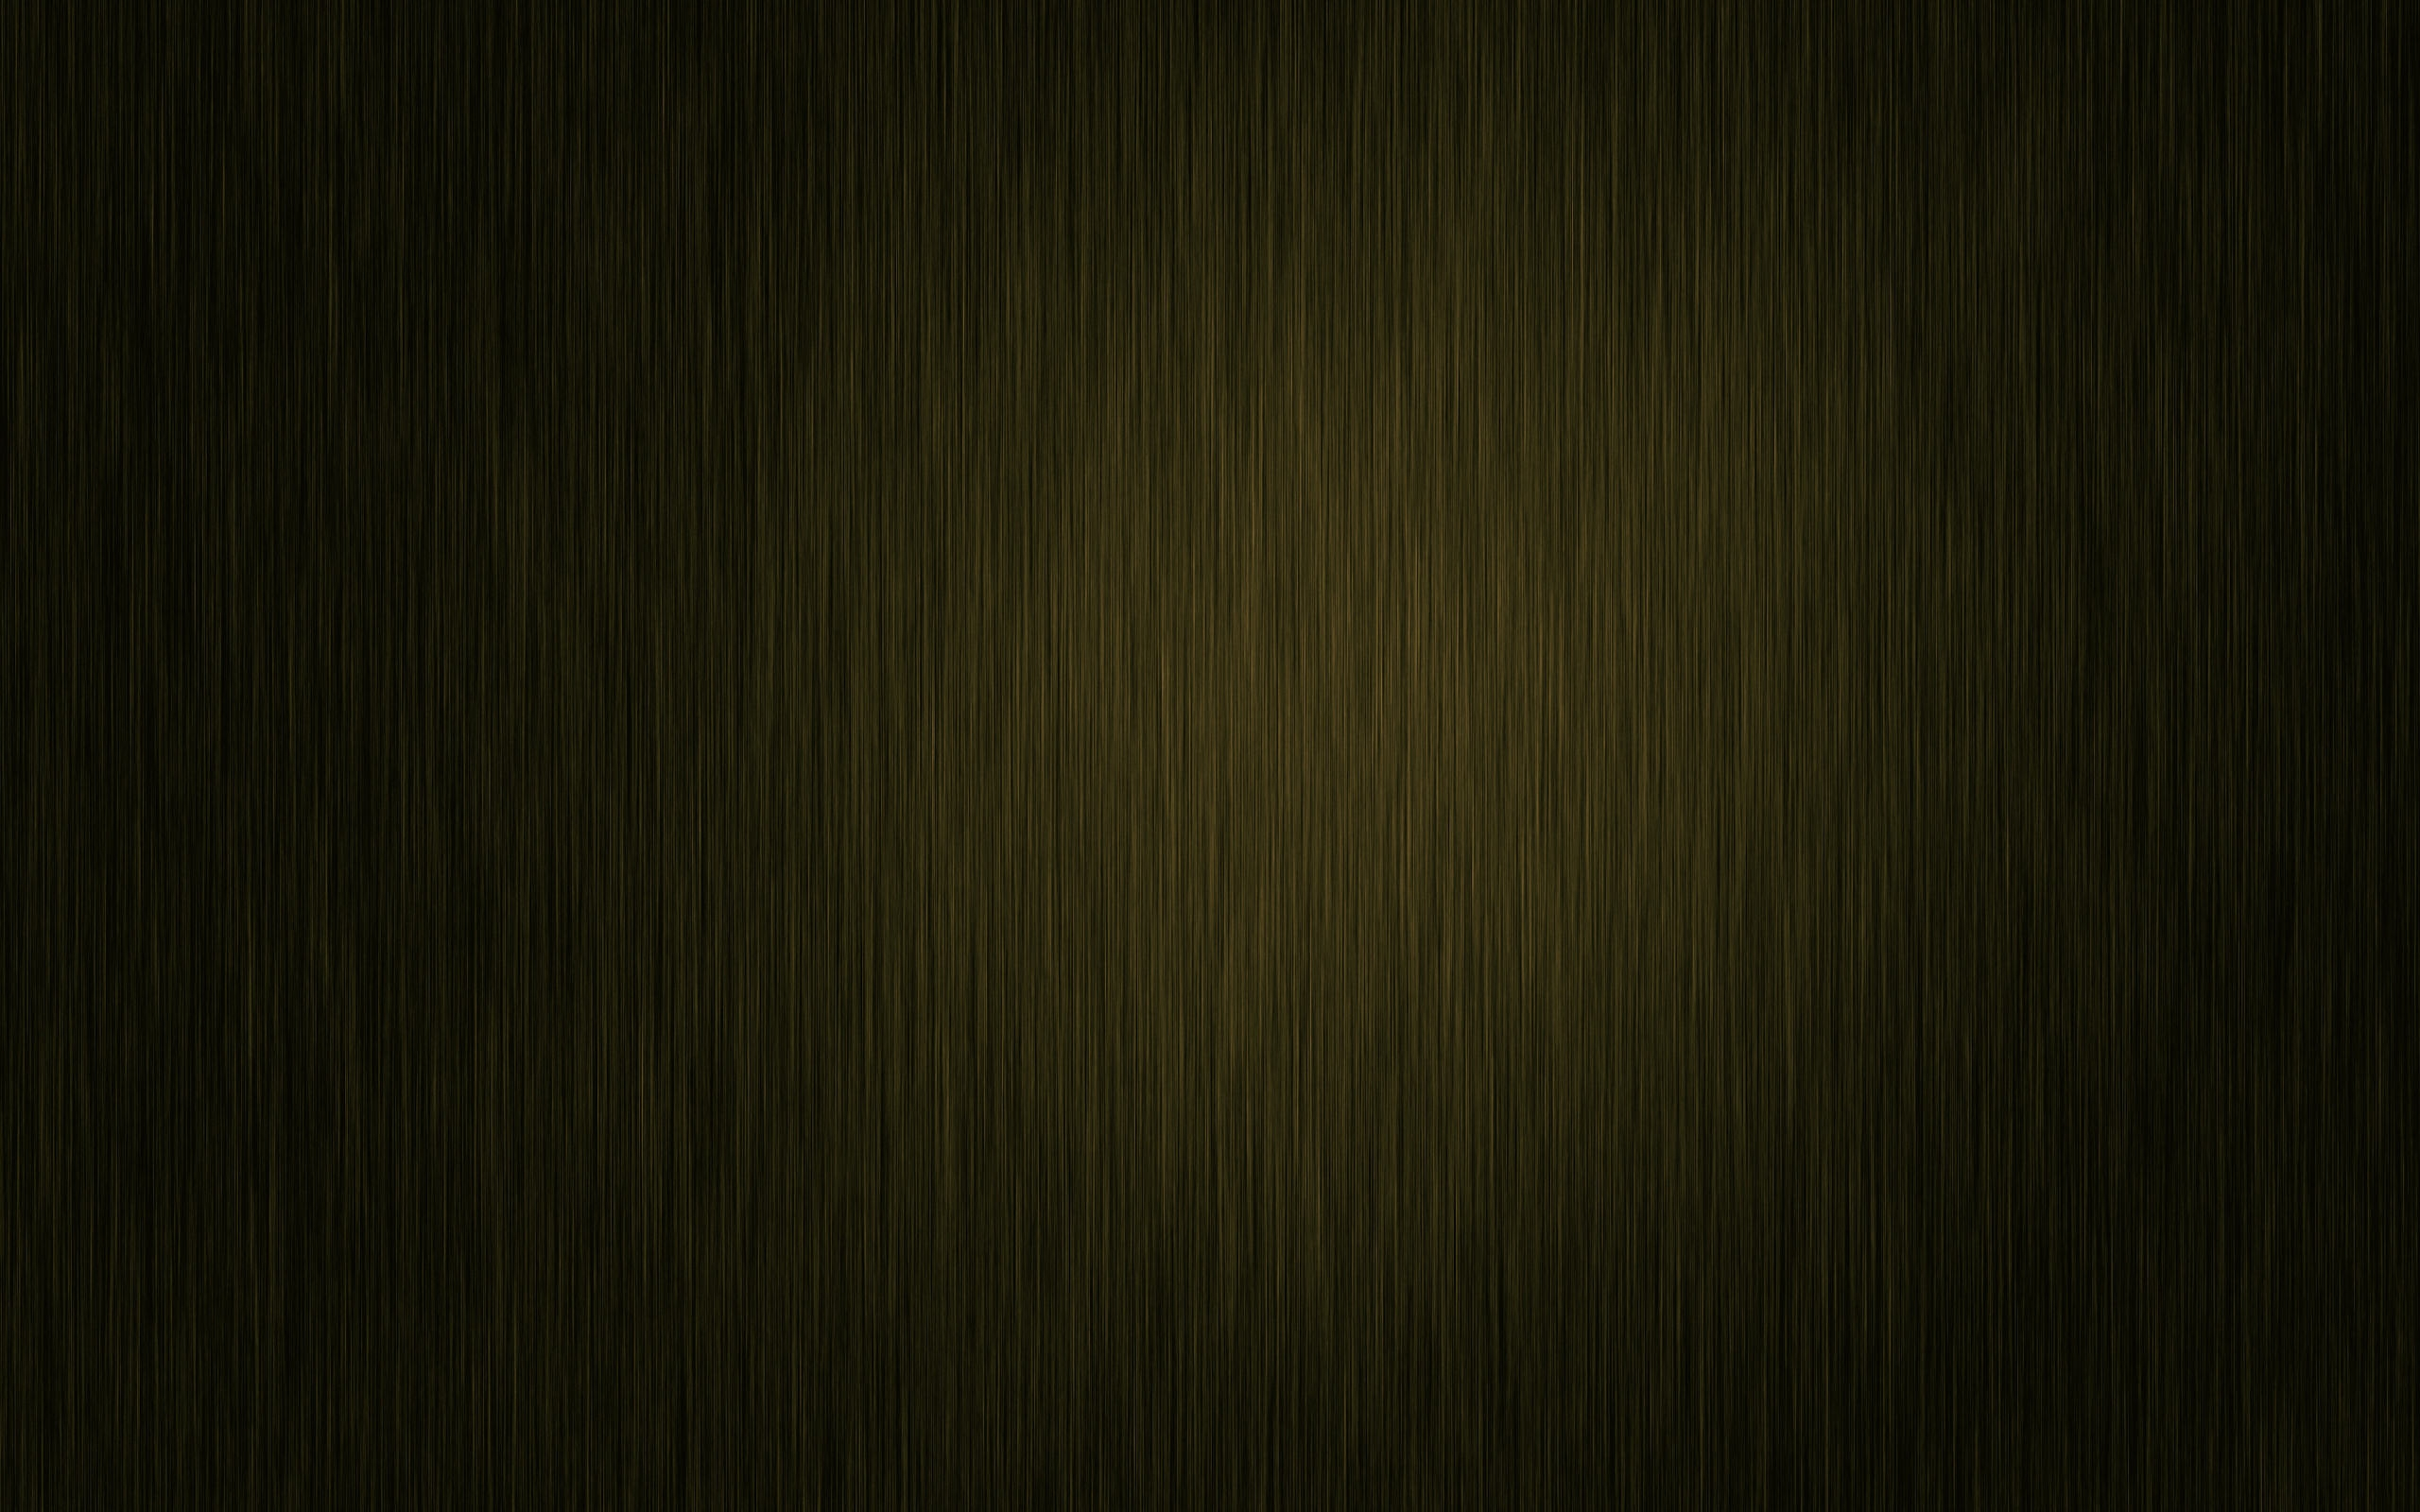 Very Elegant Green Wood Desktop Wallpaper